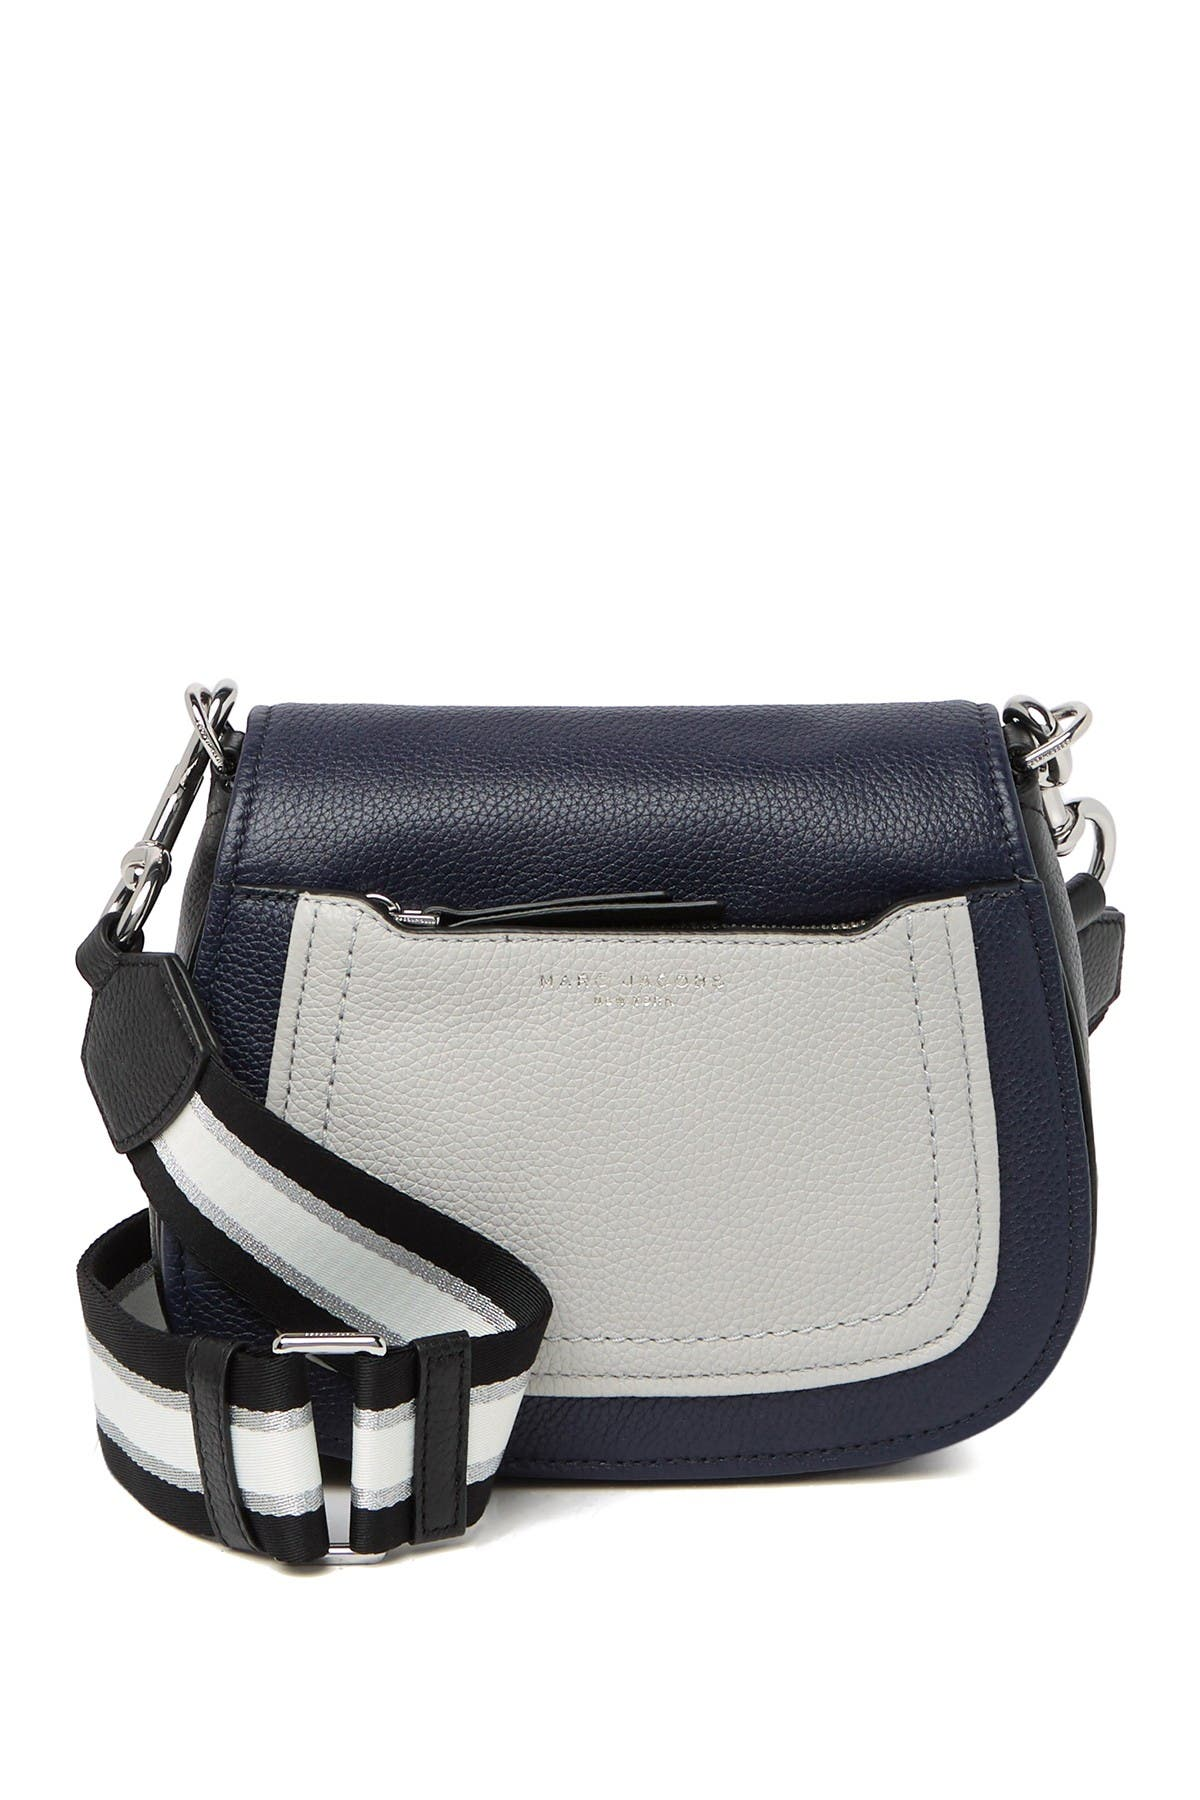 Image of Marc Jacobs Empire City Mini Leather Messenger Bag